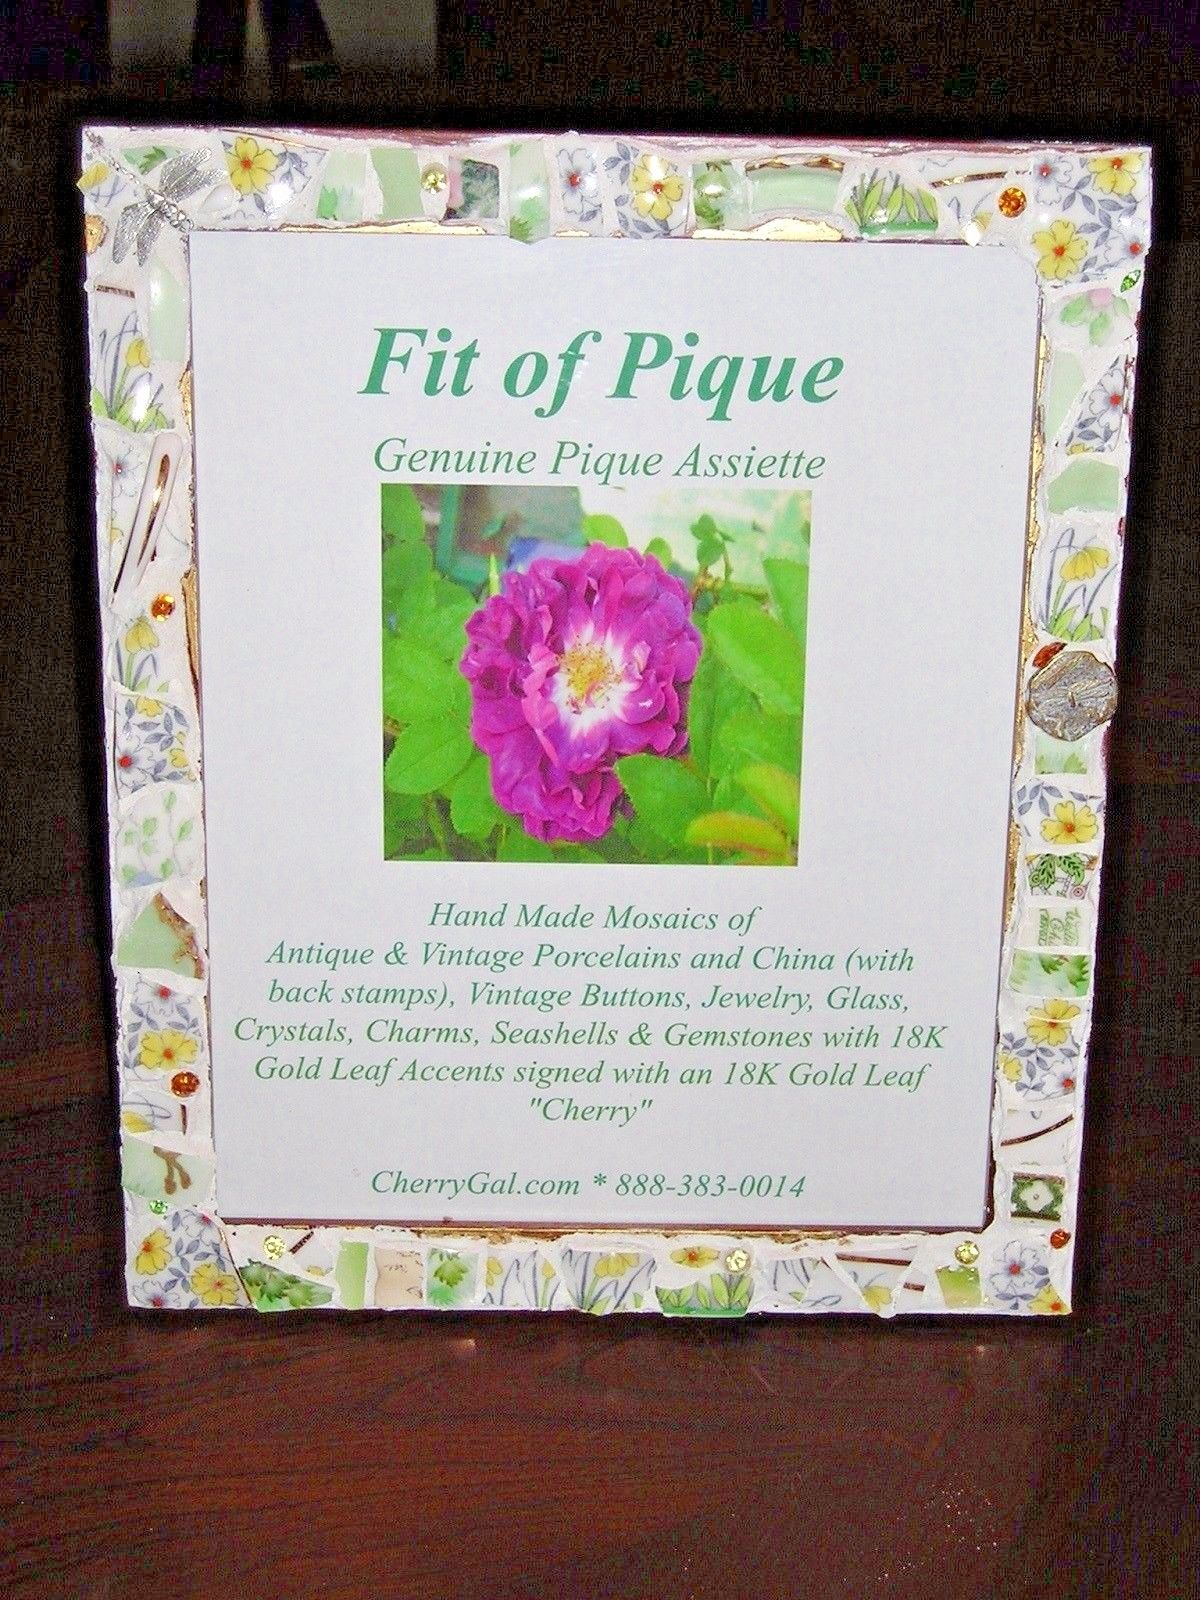 Fit Of Pique Genuine Pique Assiette Photo Frame 8 x 10 Yellow Floral Dragonflies